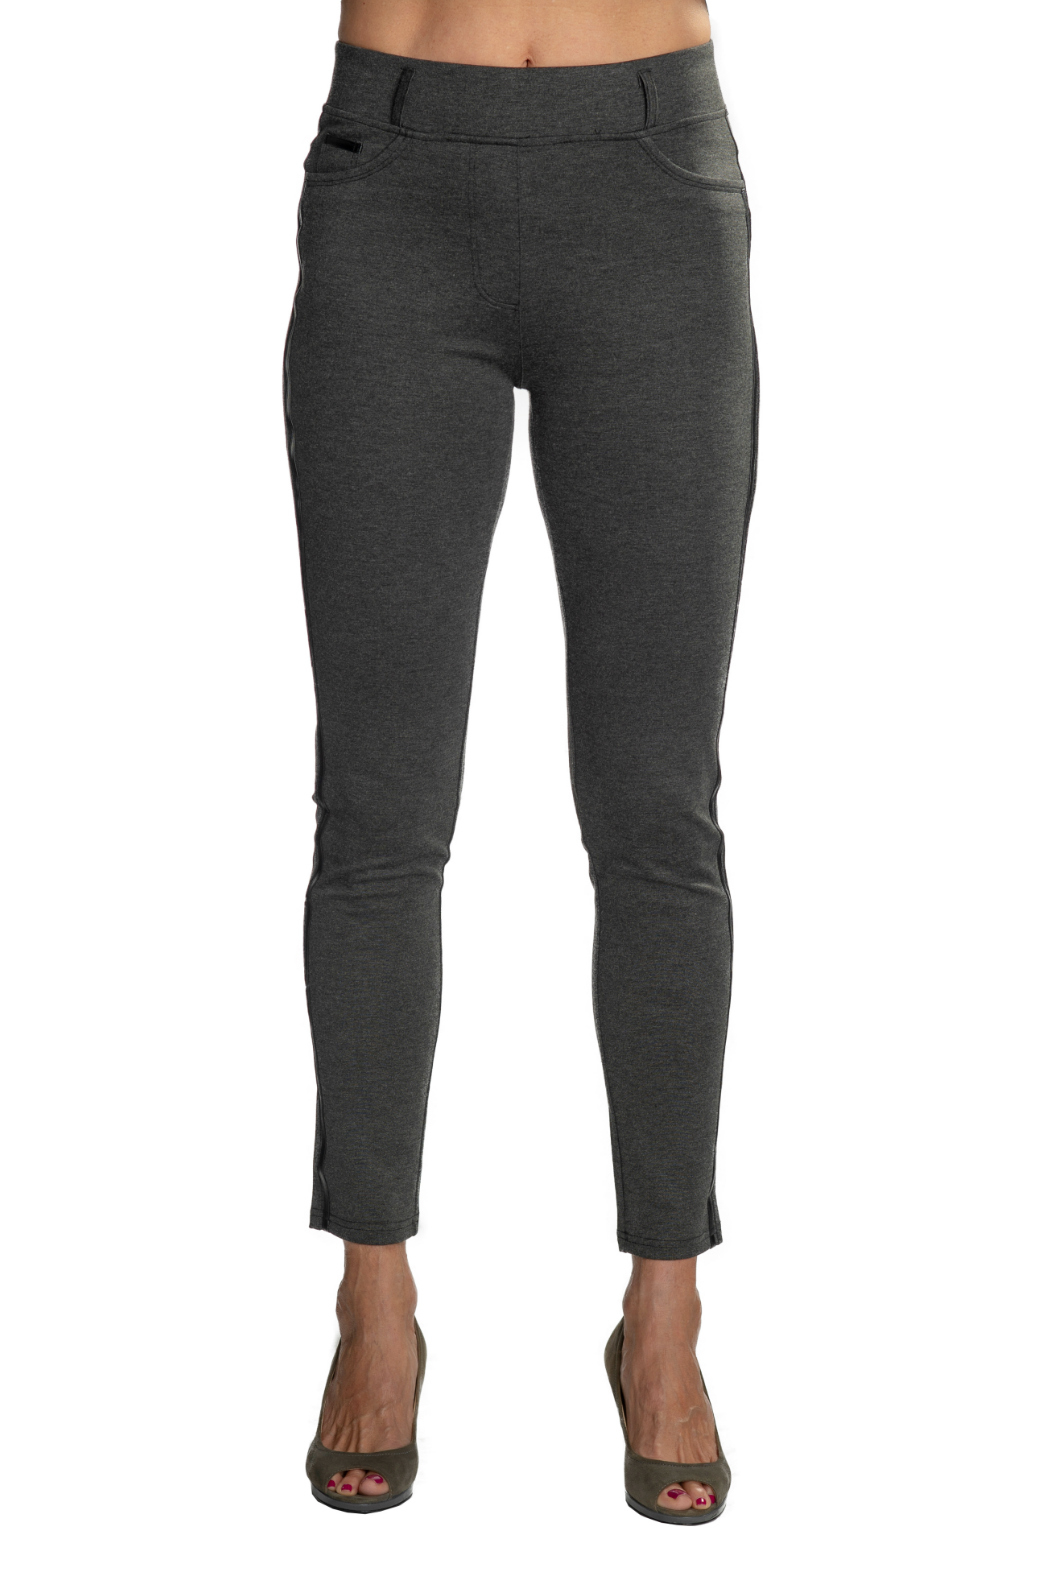 Patrizia Luca Charcoal  pull-on Jegging with Leather Side Stripe - Main Image